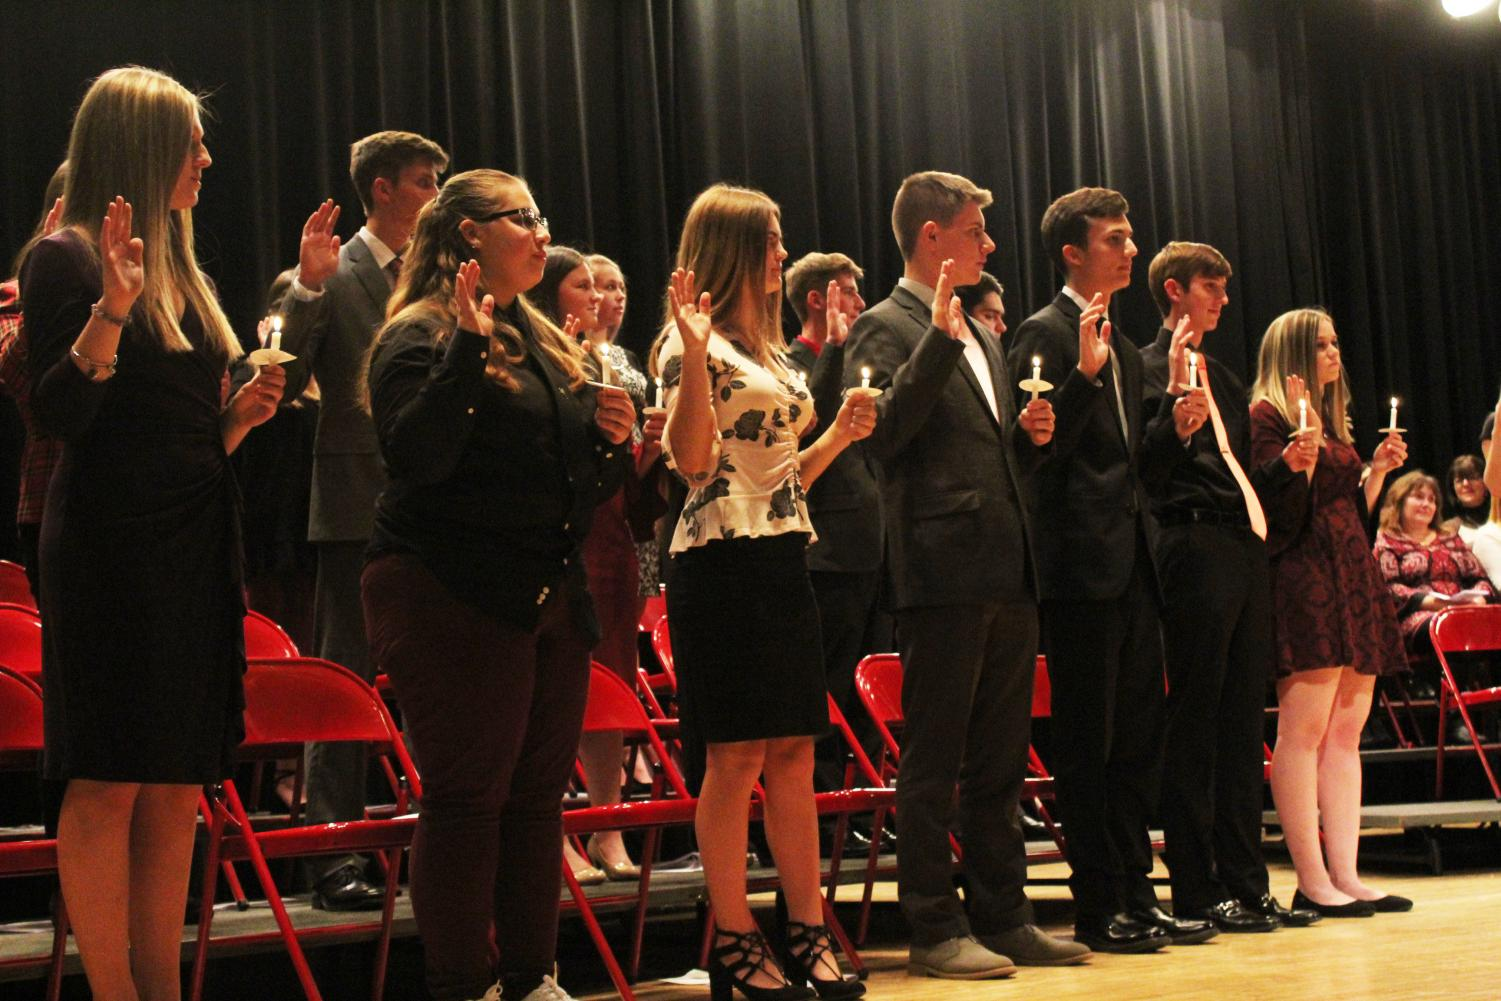 NHS indoctrination on Oct. 8th with both old and new members following the traditional ceremony.